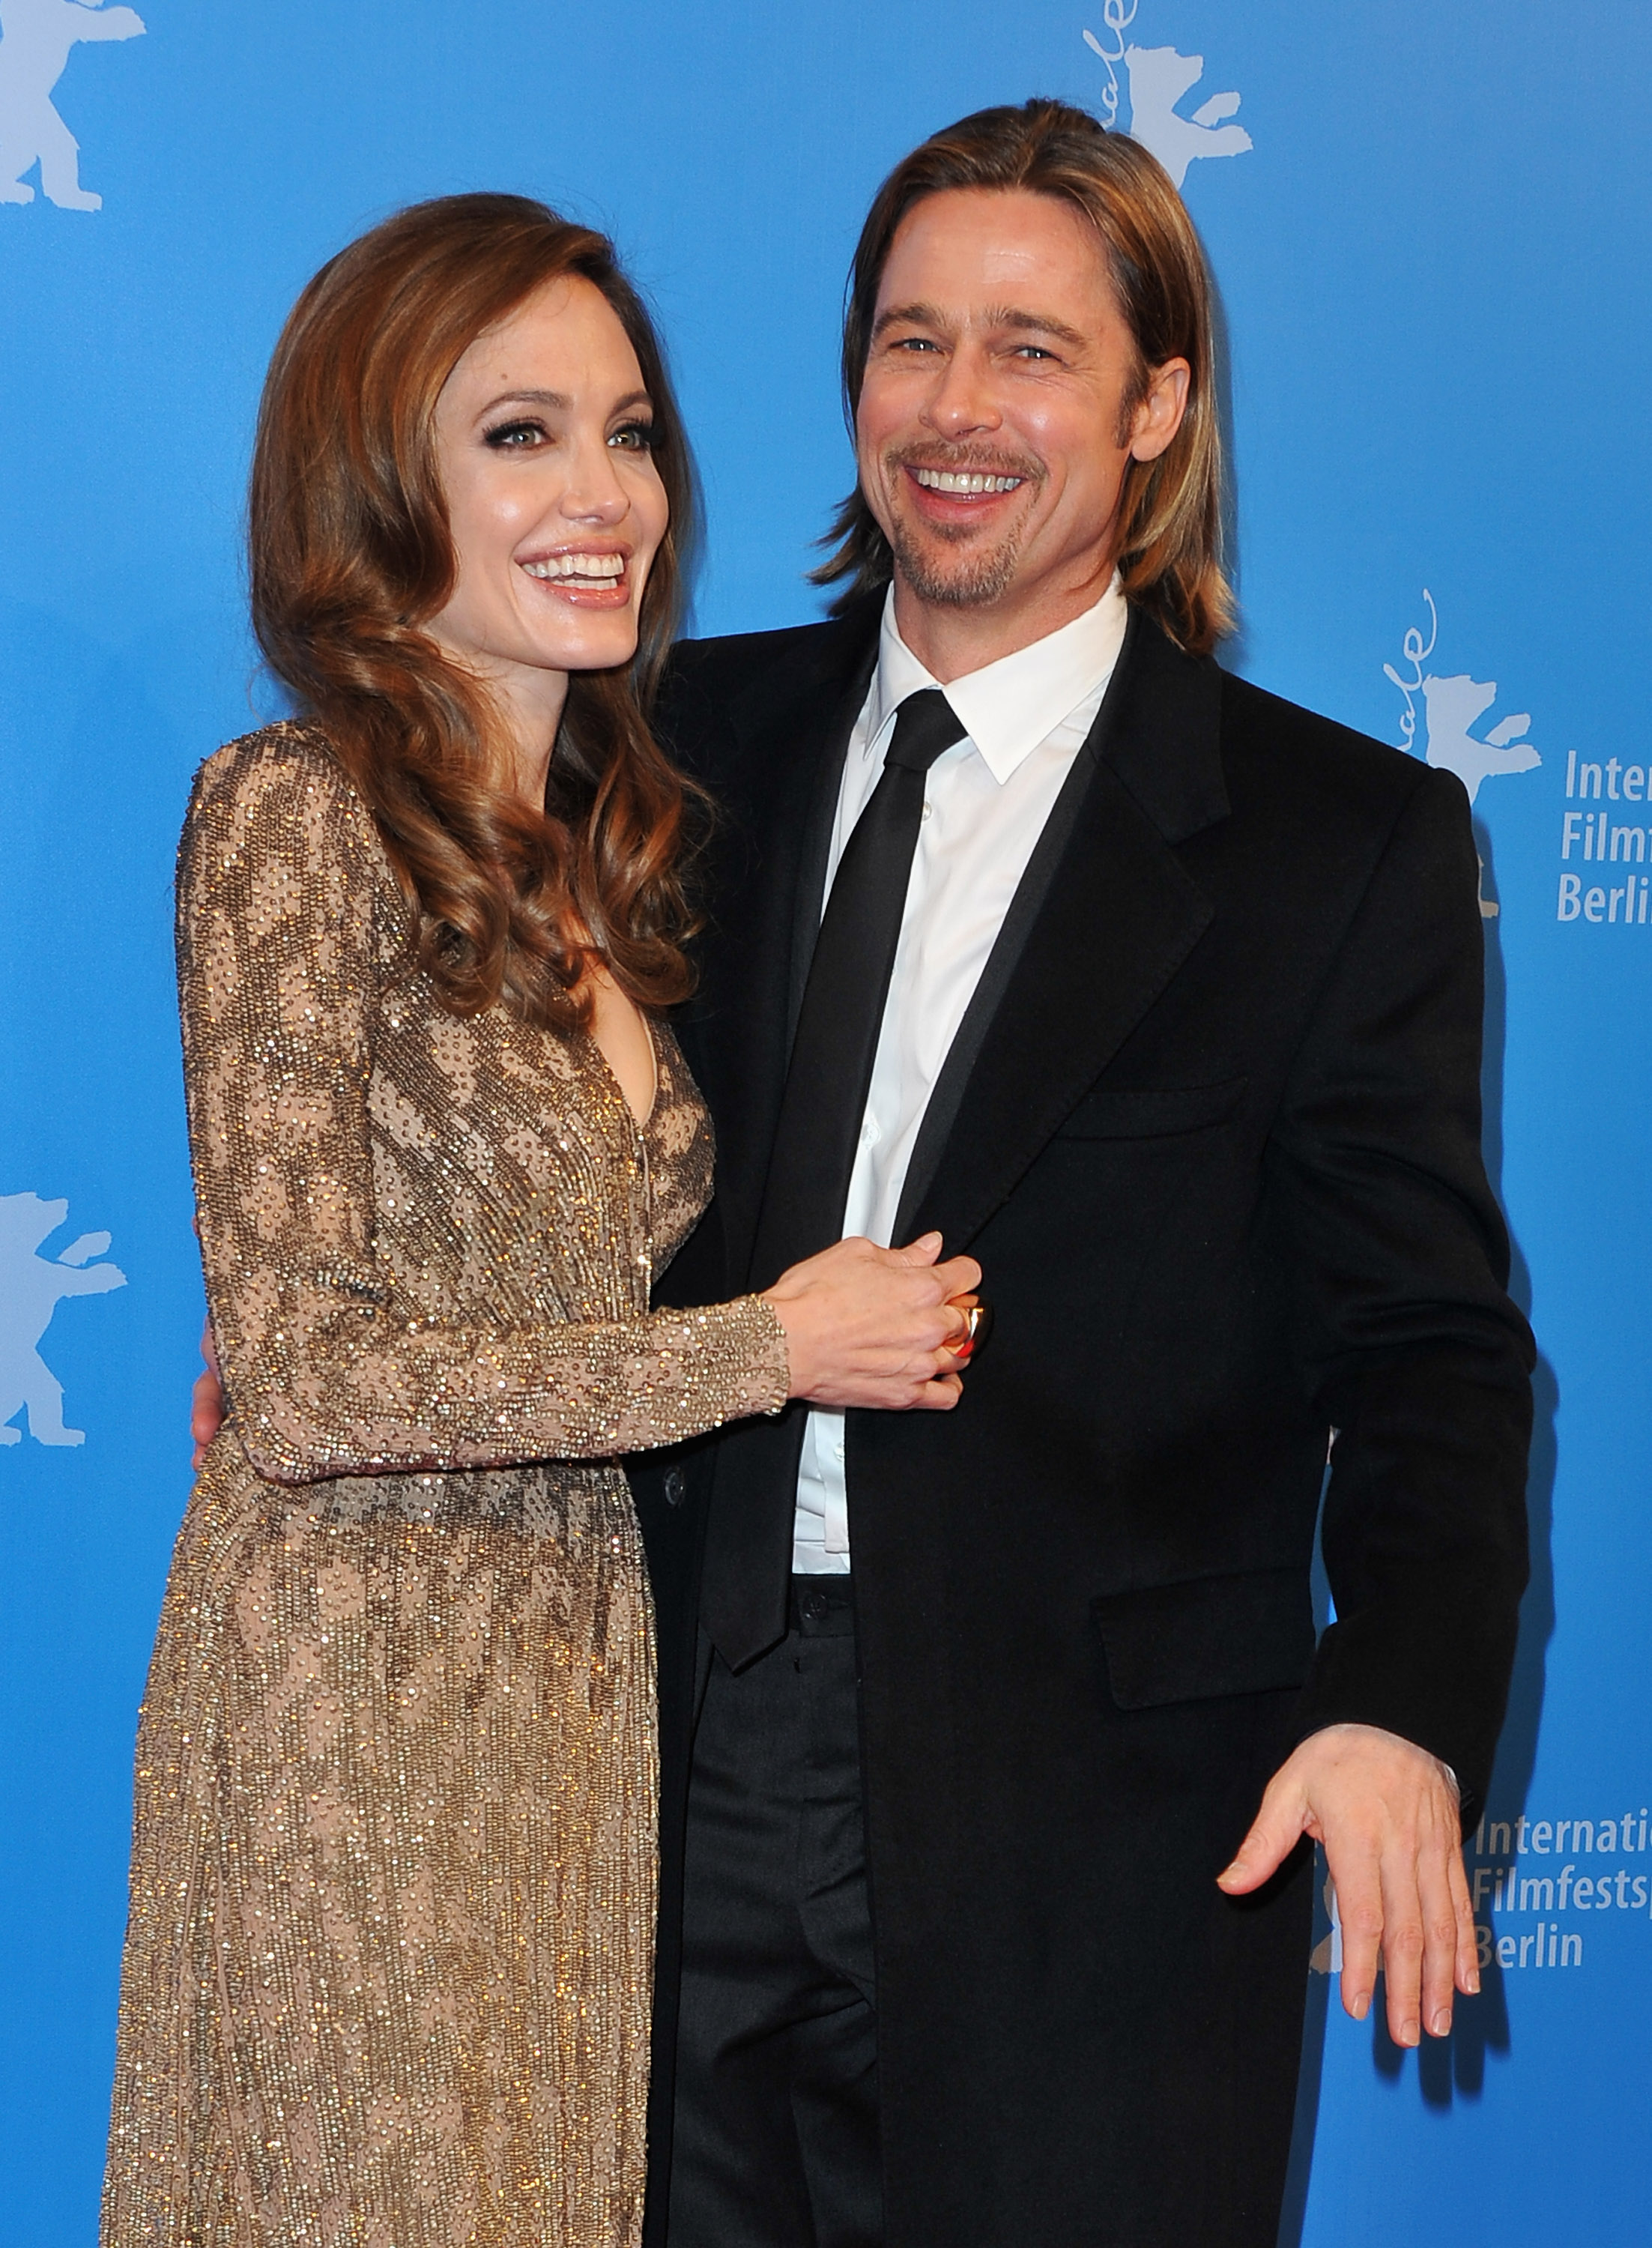 Their split was rumored to be because of Brad's growing relationship with Angelina Jolie after the pair worked together in 'Mr. and Mrs. Smith' in 2004. (Photo by Pascal Le Segretain/Getty Images)